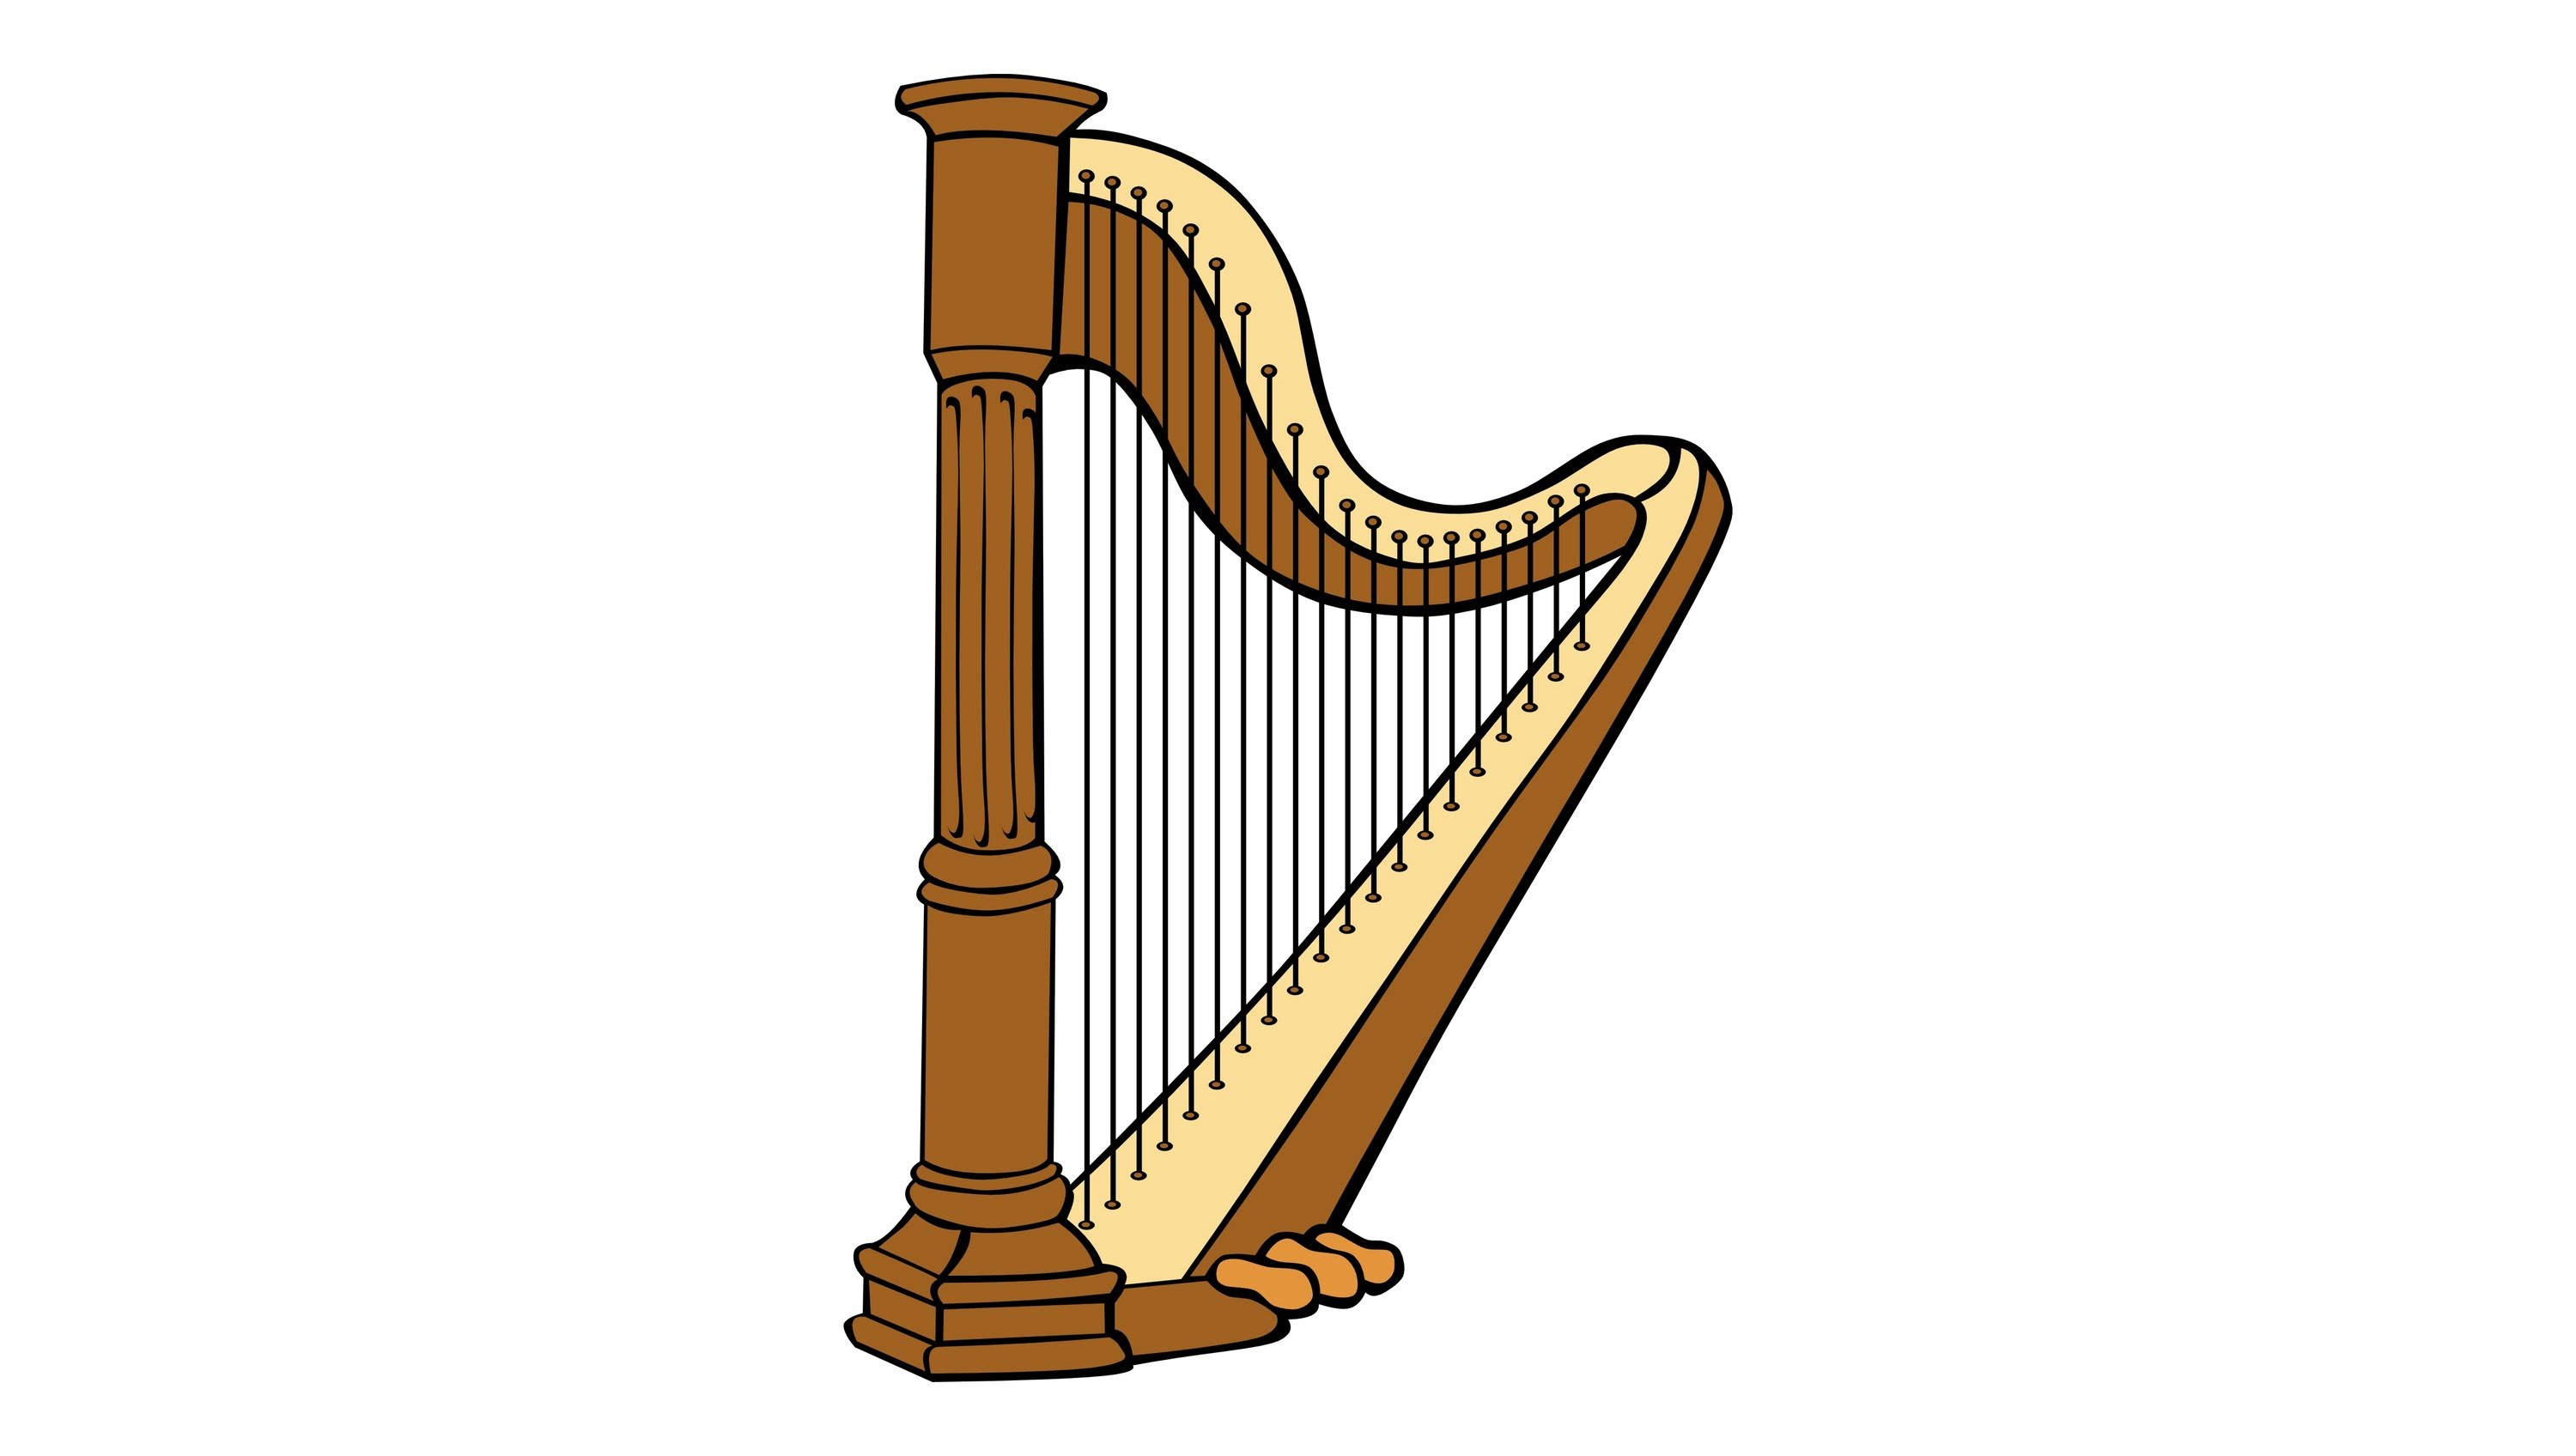 Noise clipart instrumental music Harp effect Harp sound effect